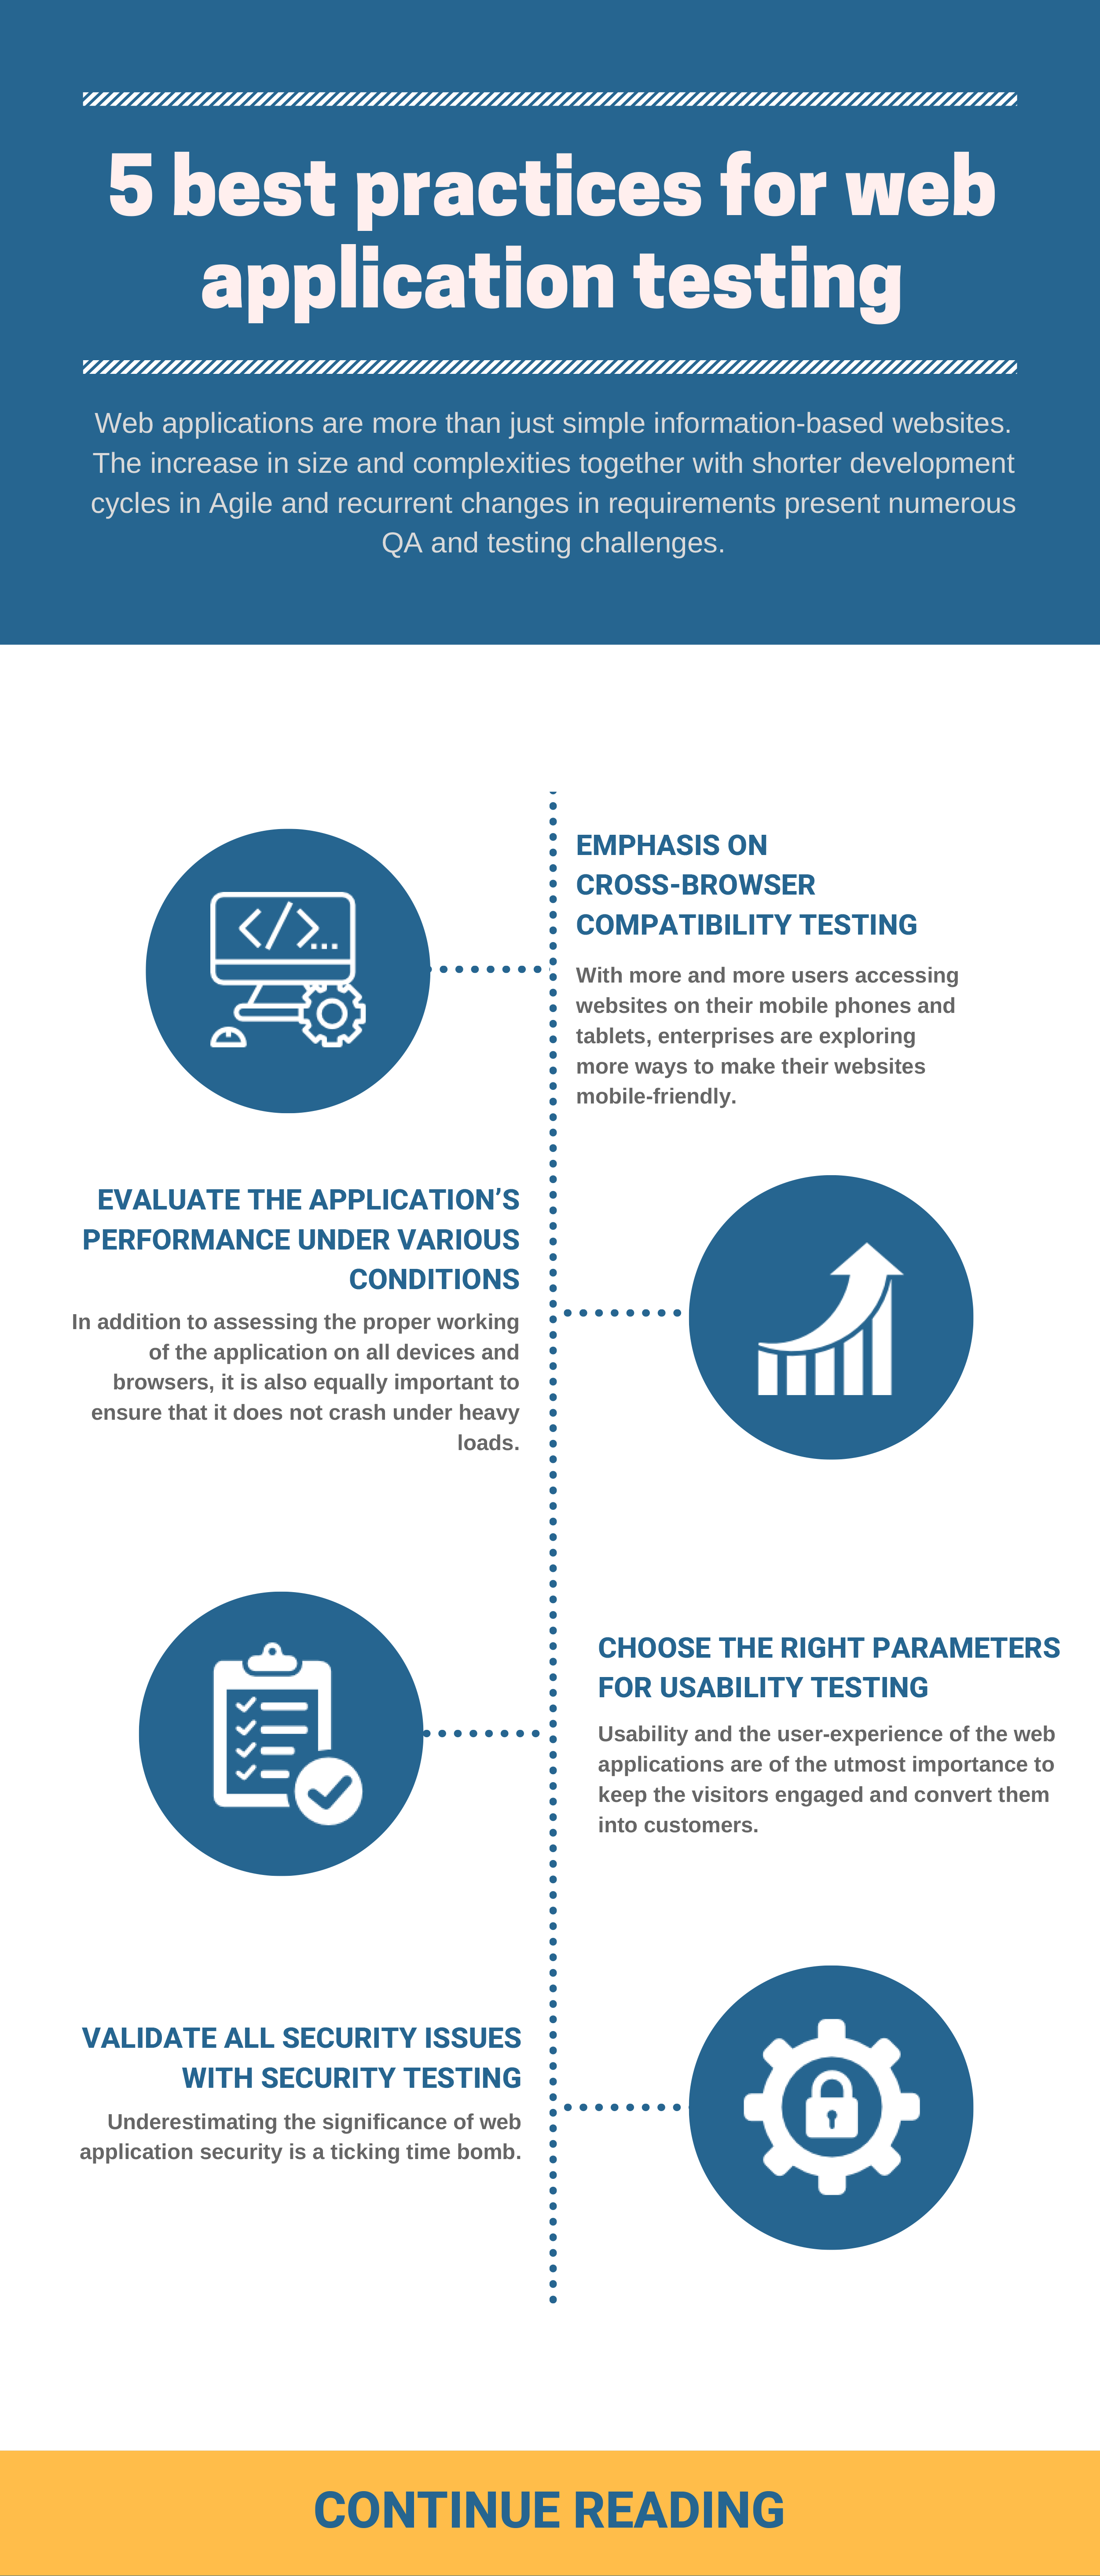 Blog - 5 best practices for web application testing | QA